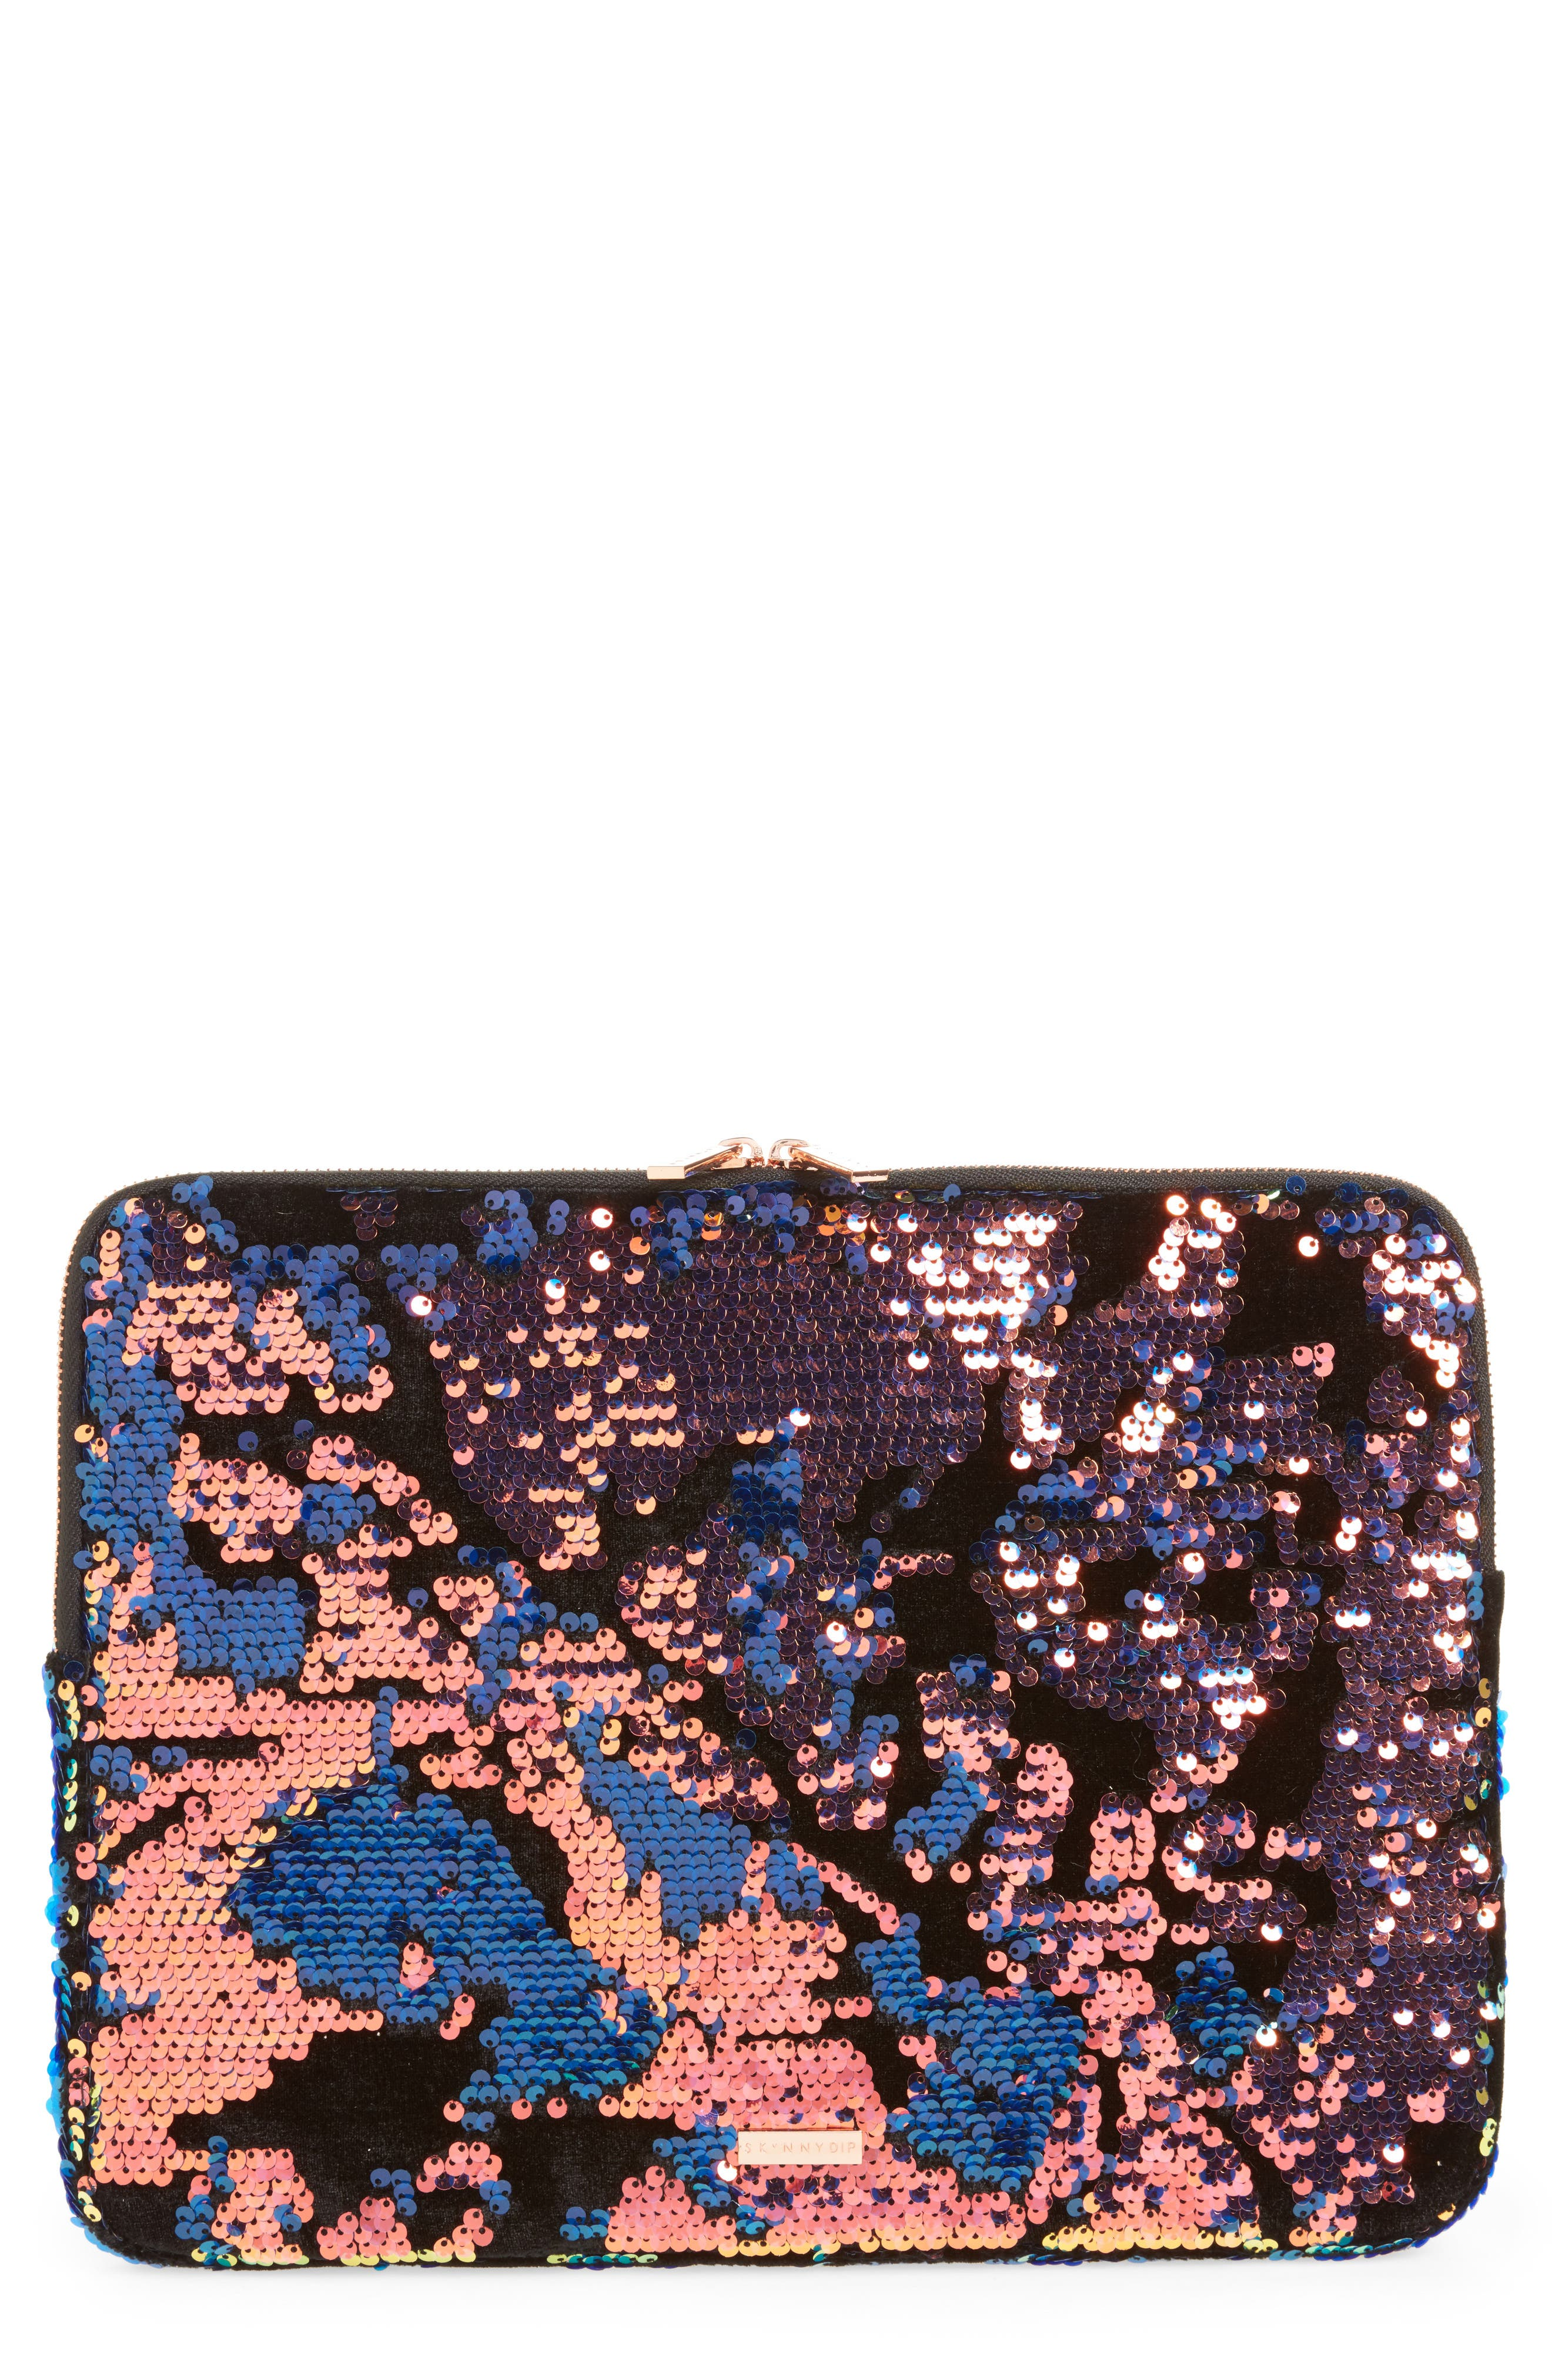 Alternate Image 1 Selected - Skinny Dip Luxe 13-Inch Laptop Case